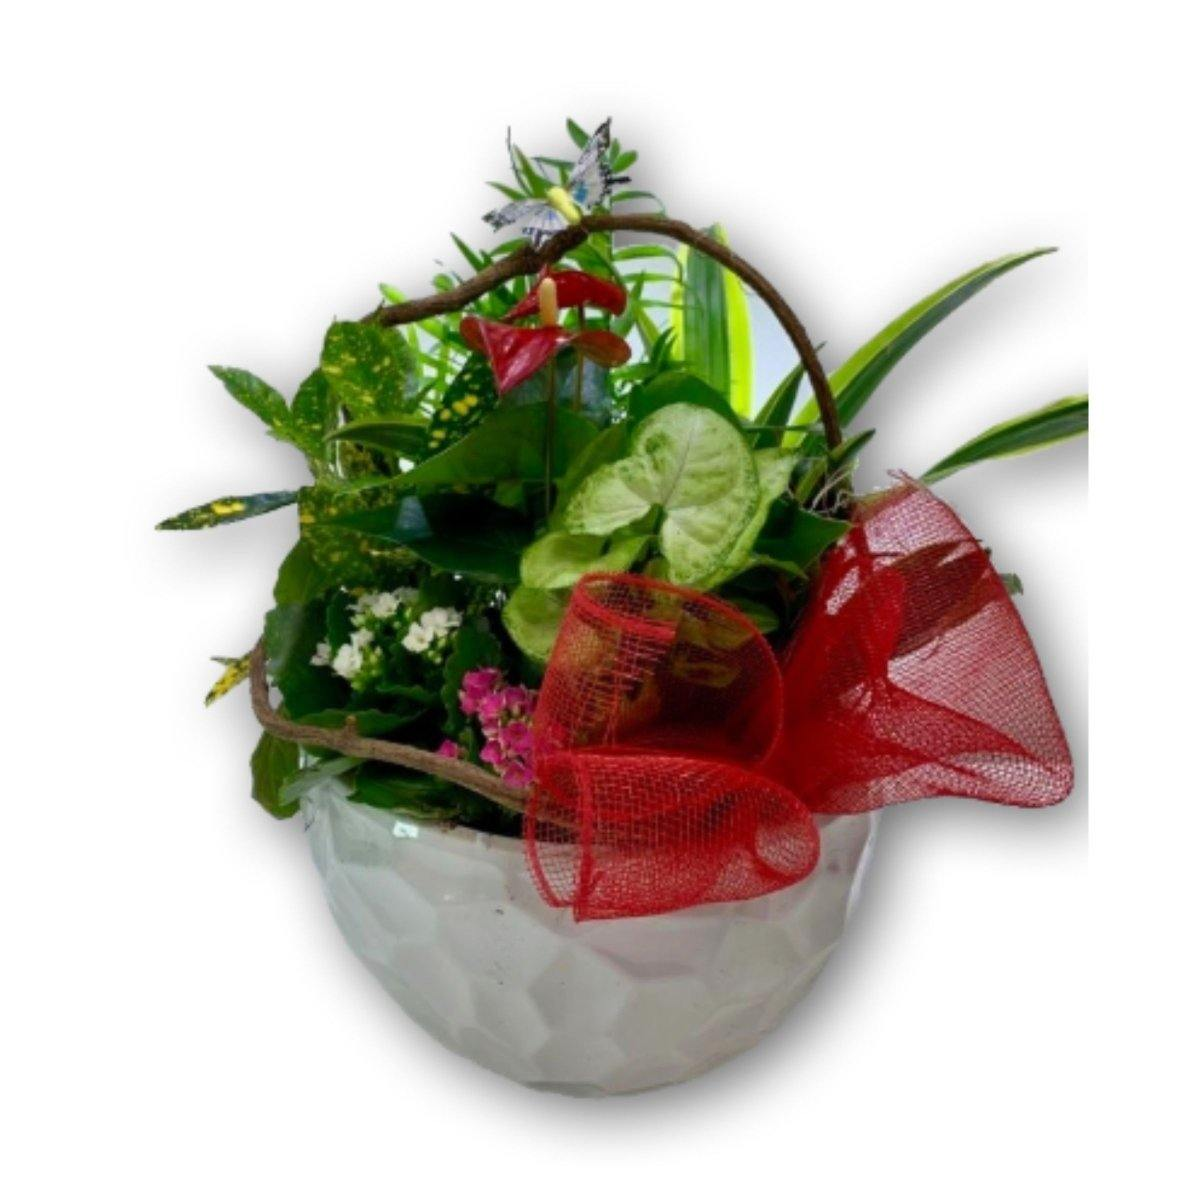 Planter with Red Bow in Ceramic Pot - Shalimar Flower Shop